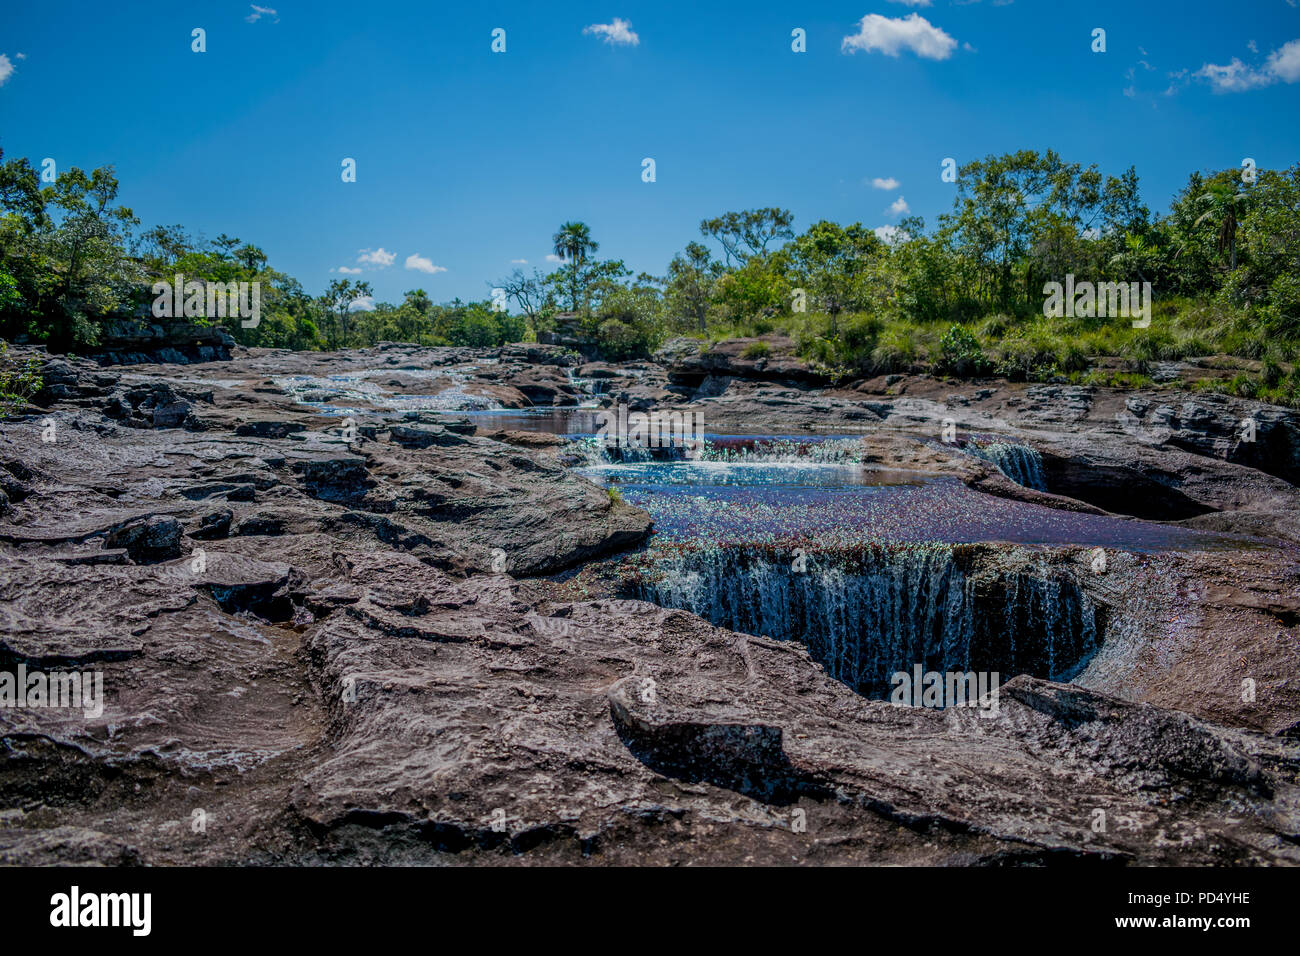 Caño Cristales, the most colorful colombian river. - Stock Image